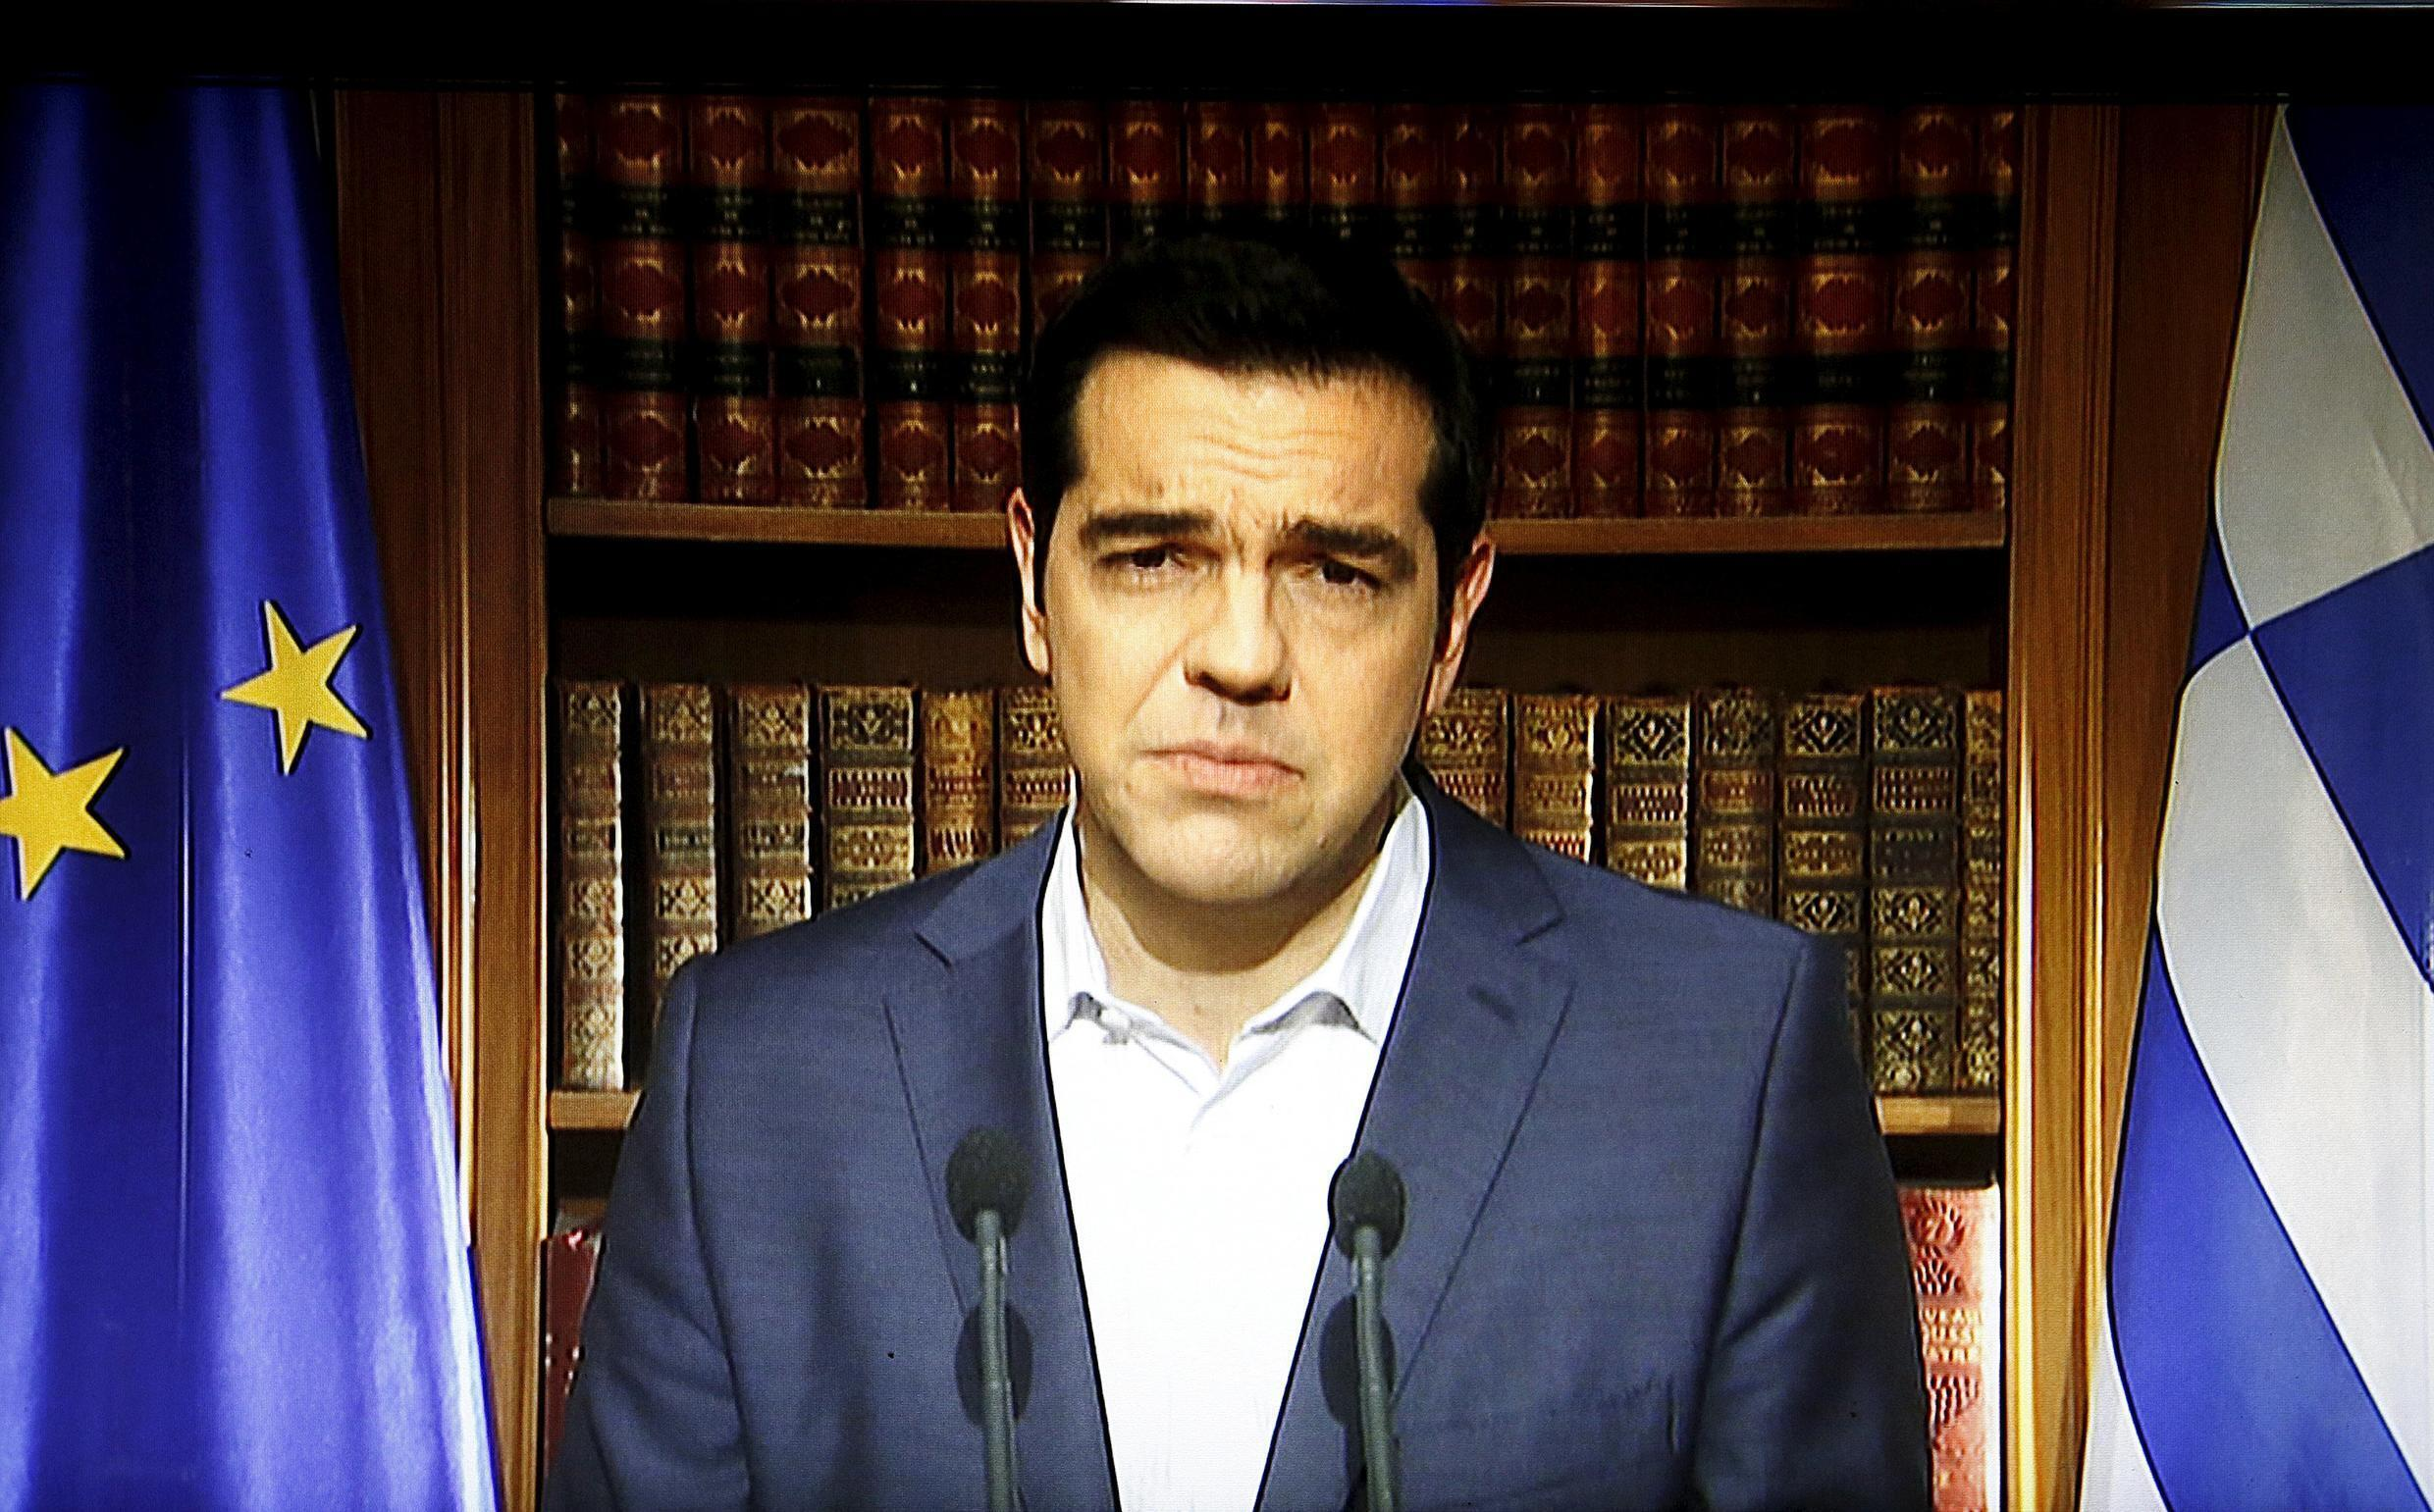 Greek Prime Minister Alexis Tsipras is seen on a television monitor while addressing the nation in Athens, Greece July 1, 2015.